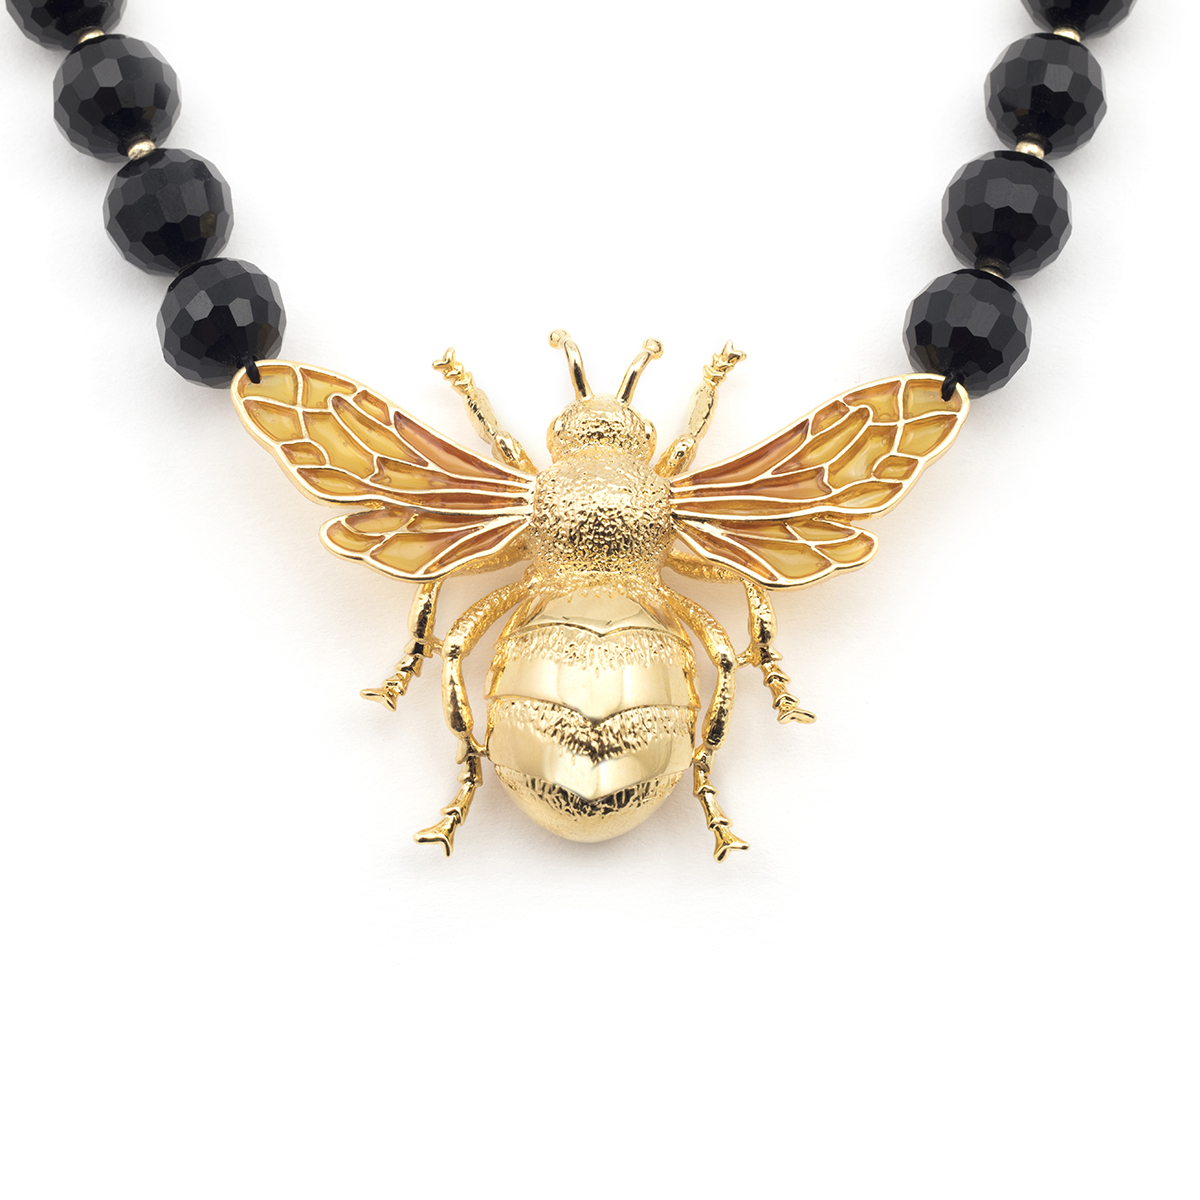 Queen Bee Statement Necklace Throughout Most Recent Queen Bee Pendant Necklaces (Gallery 3 of 25)